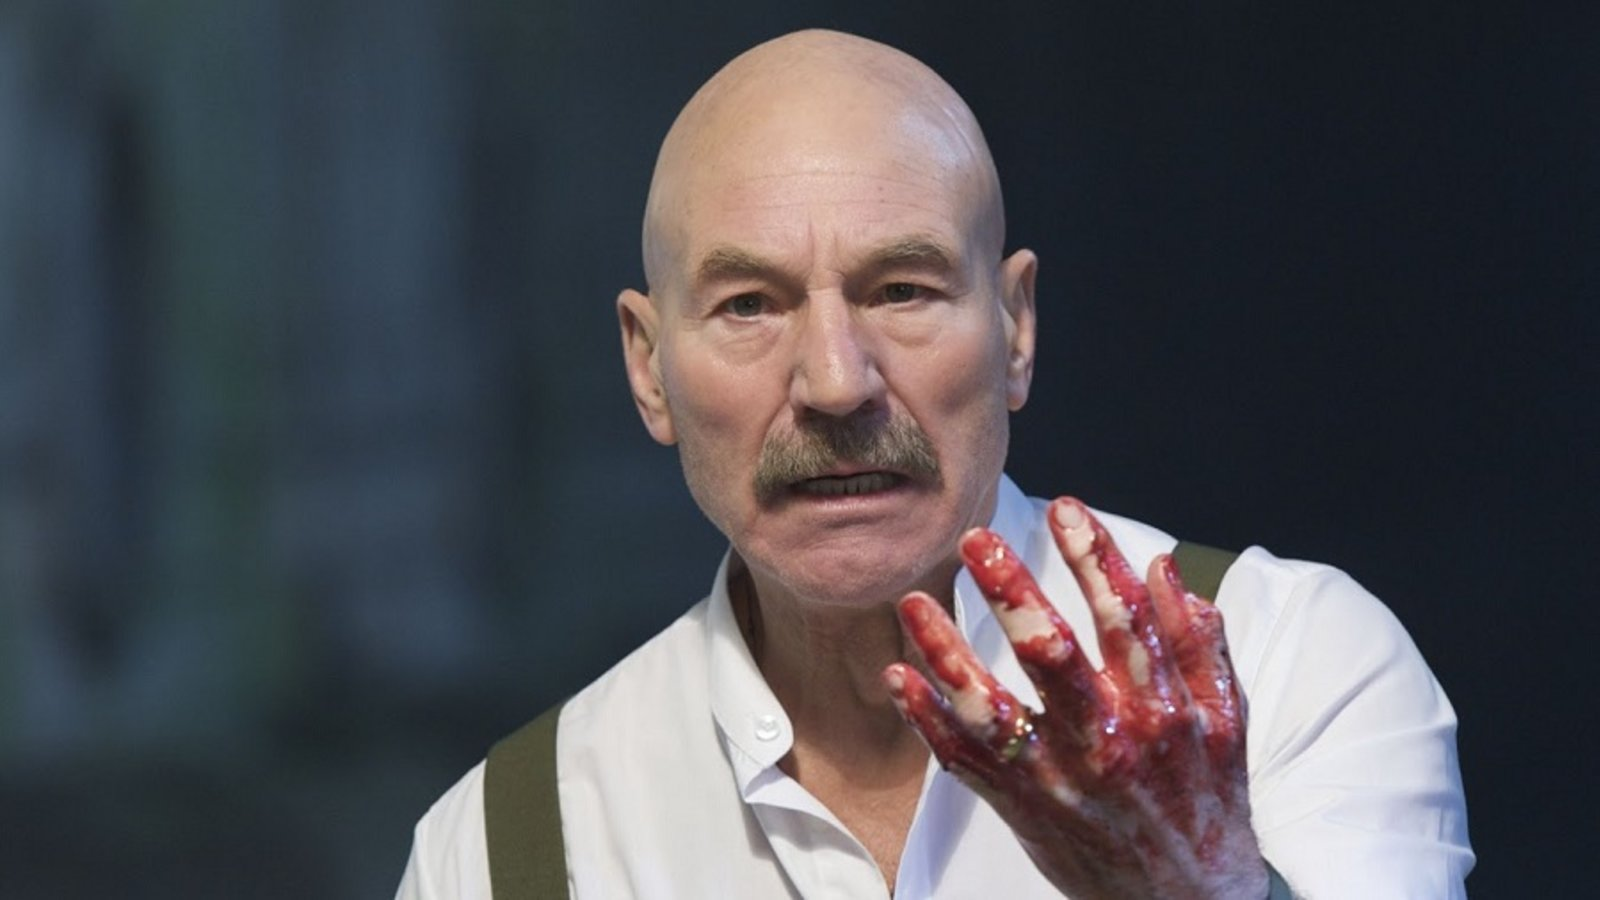 Image result for macbeth patrick stewart